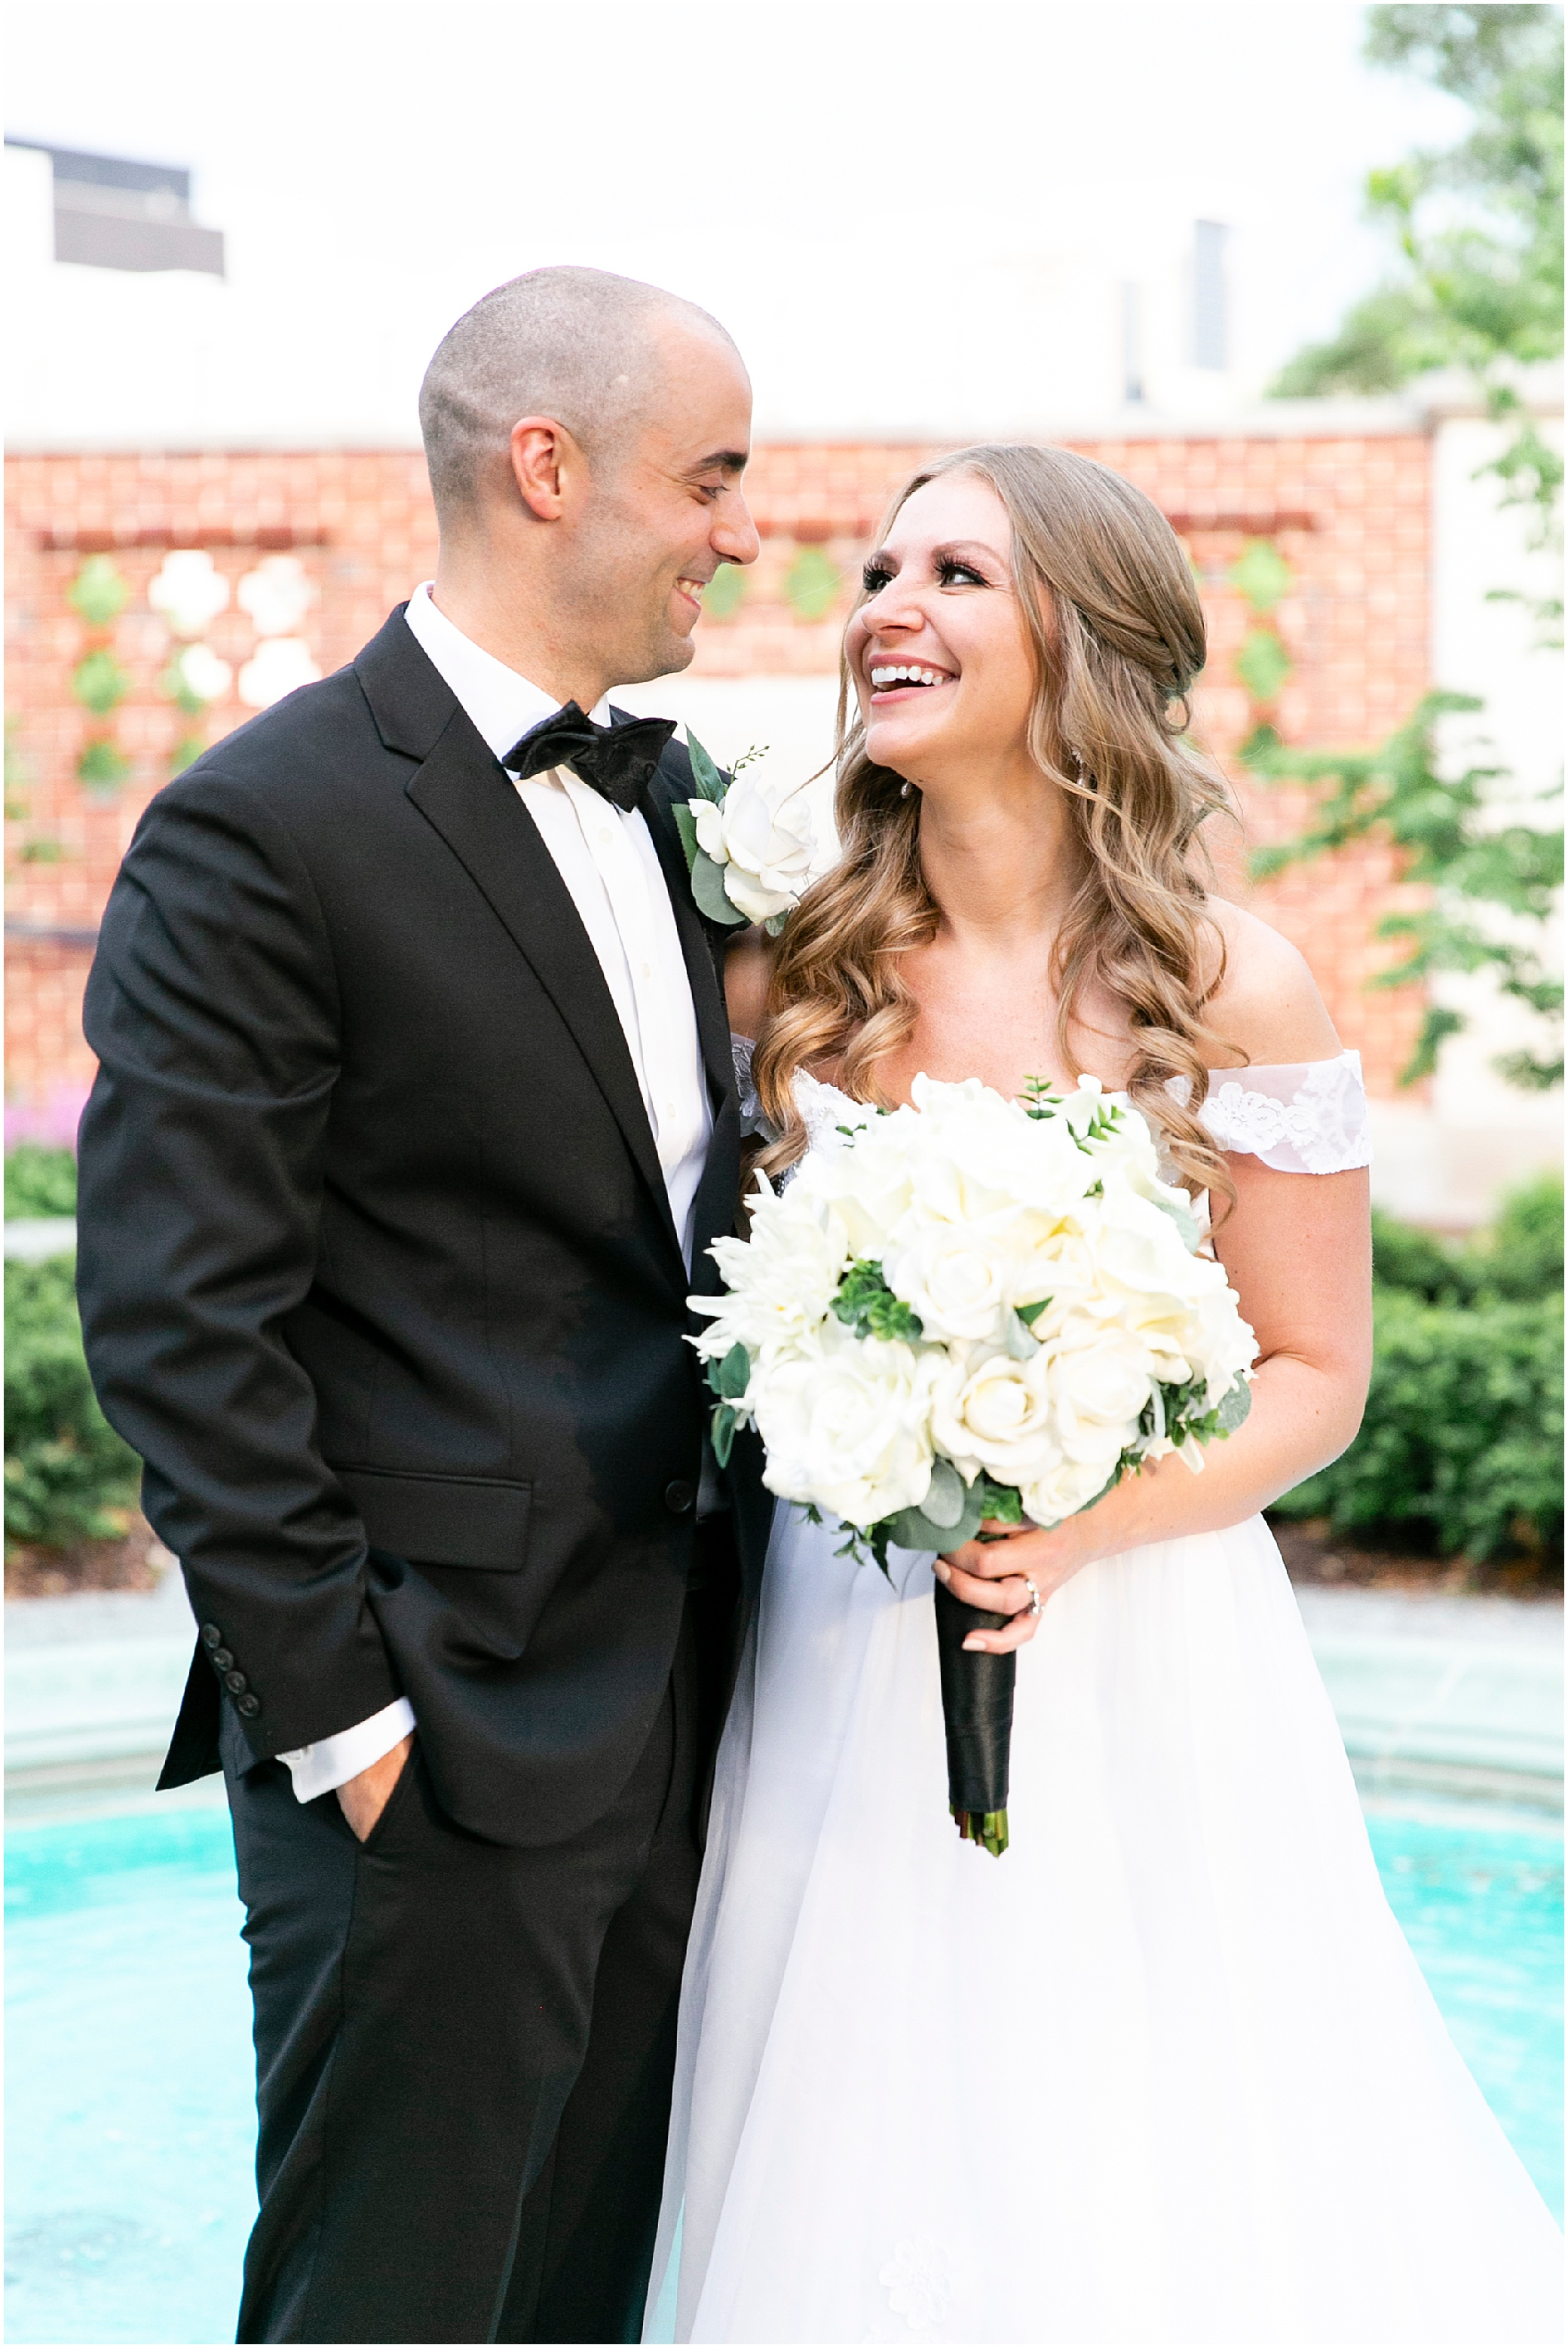 Chrysler museum wedding in Norfolk Virginia